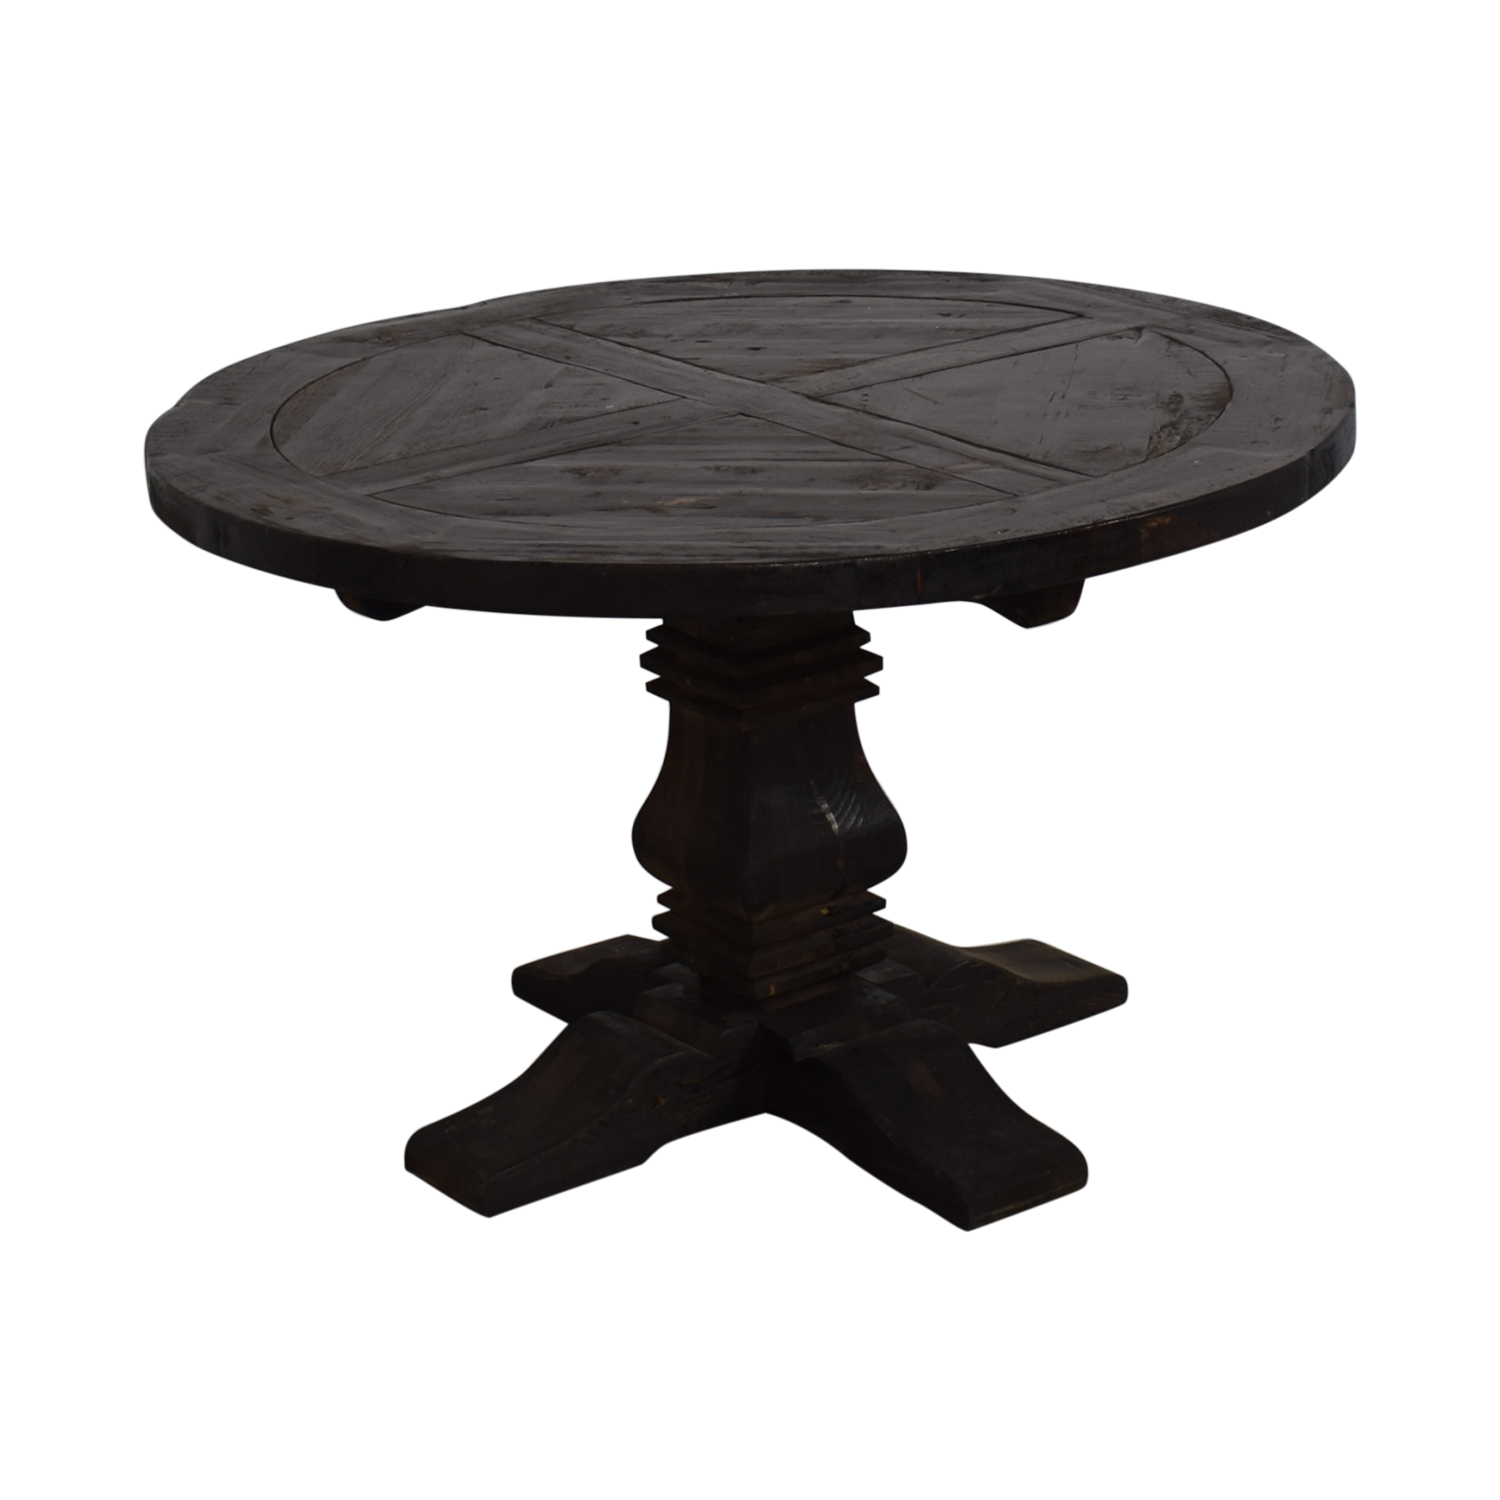 shop Restoration Hardware Restoration Hardware Round Salvaged Wood Distressed Trestle Table online